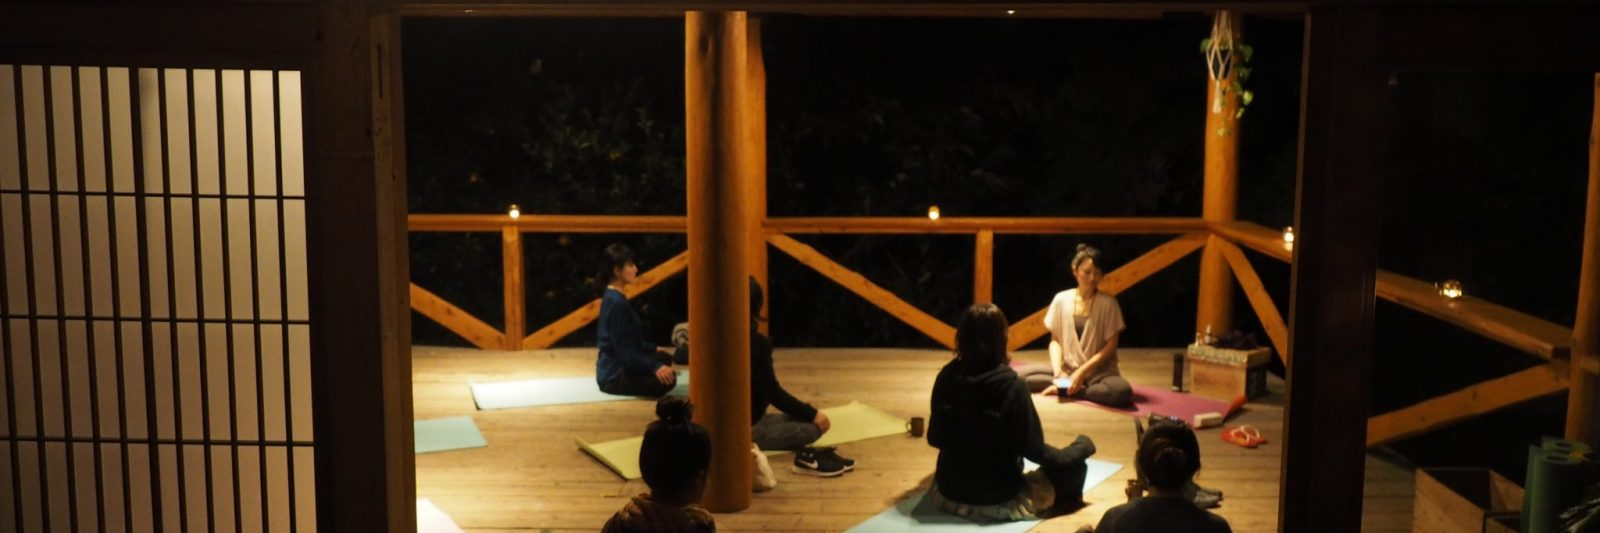 yoga at retreat wabi-sabi shimoda izu